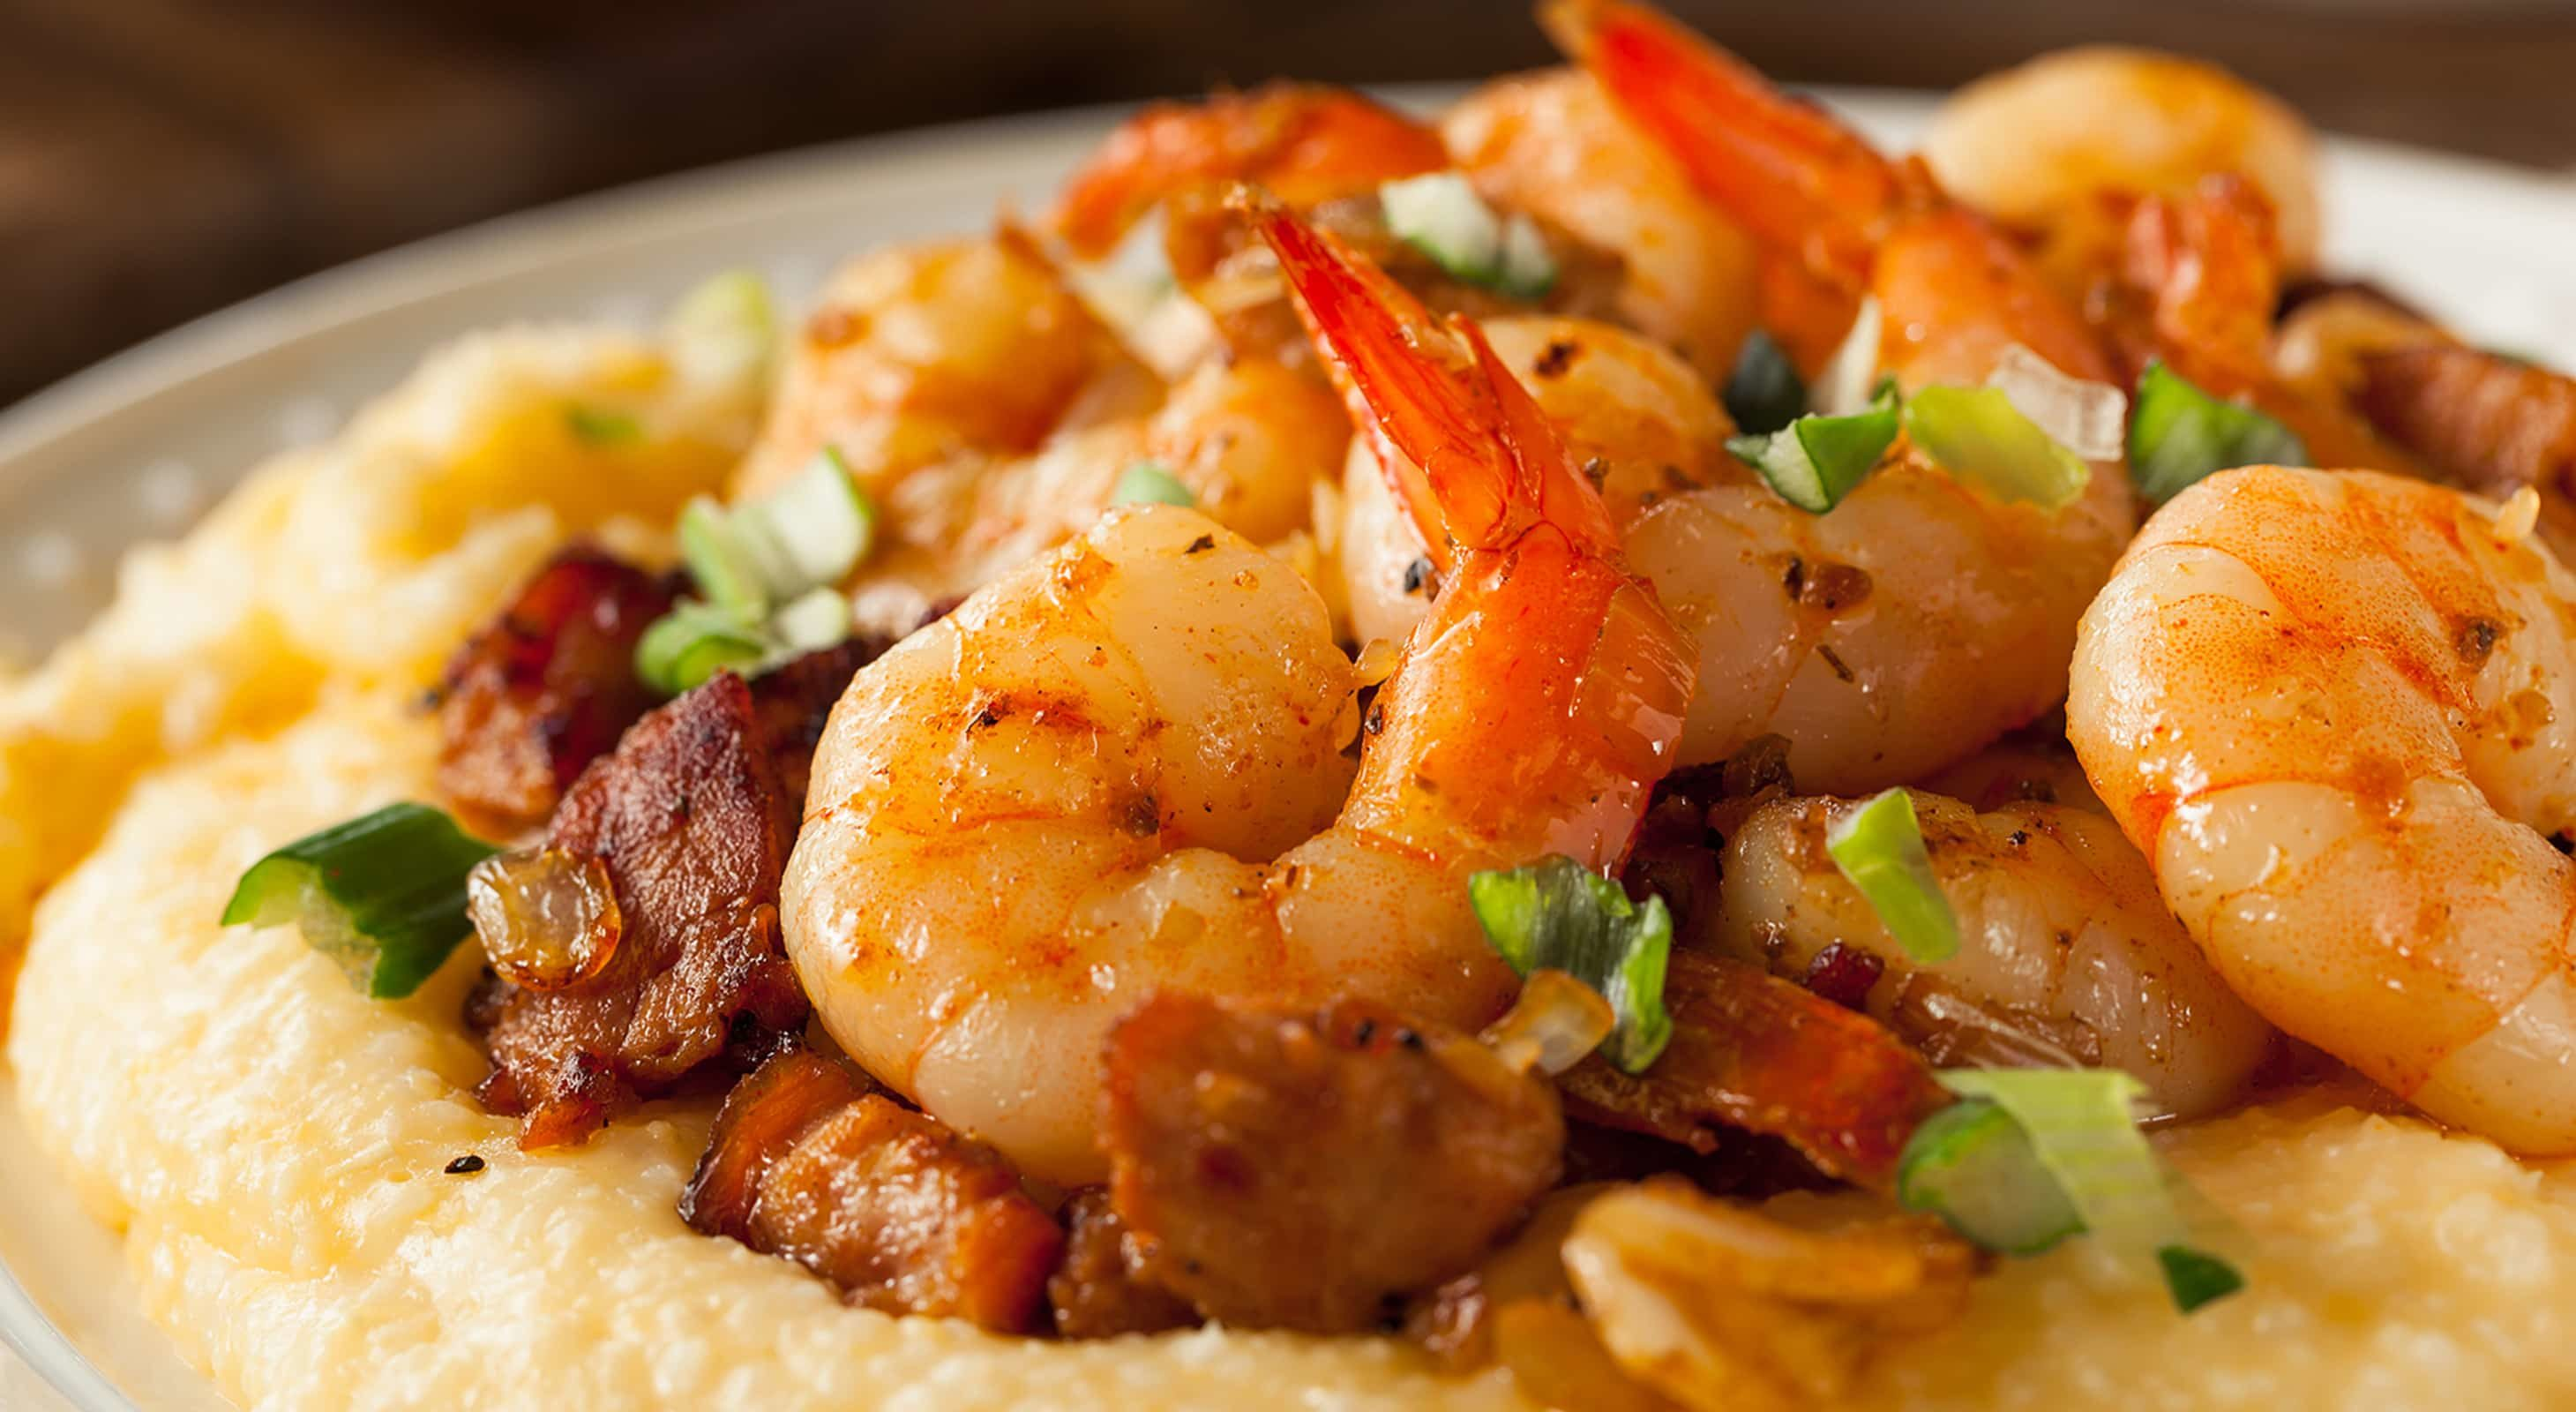 Shrimp and grits with sausage